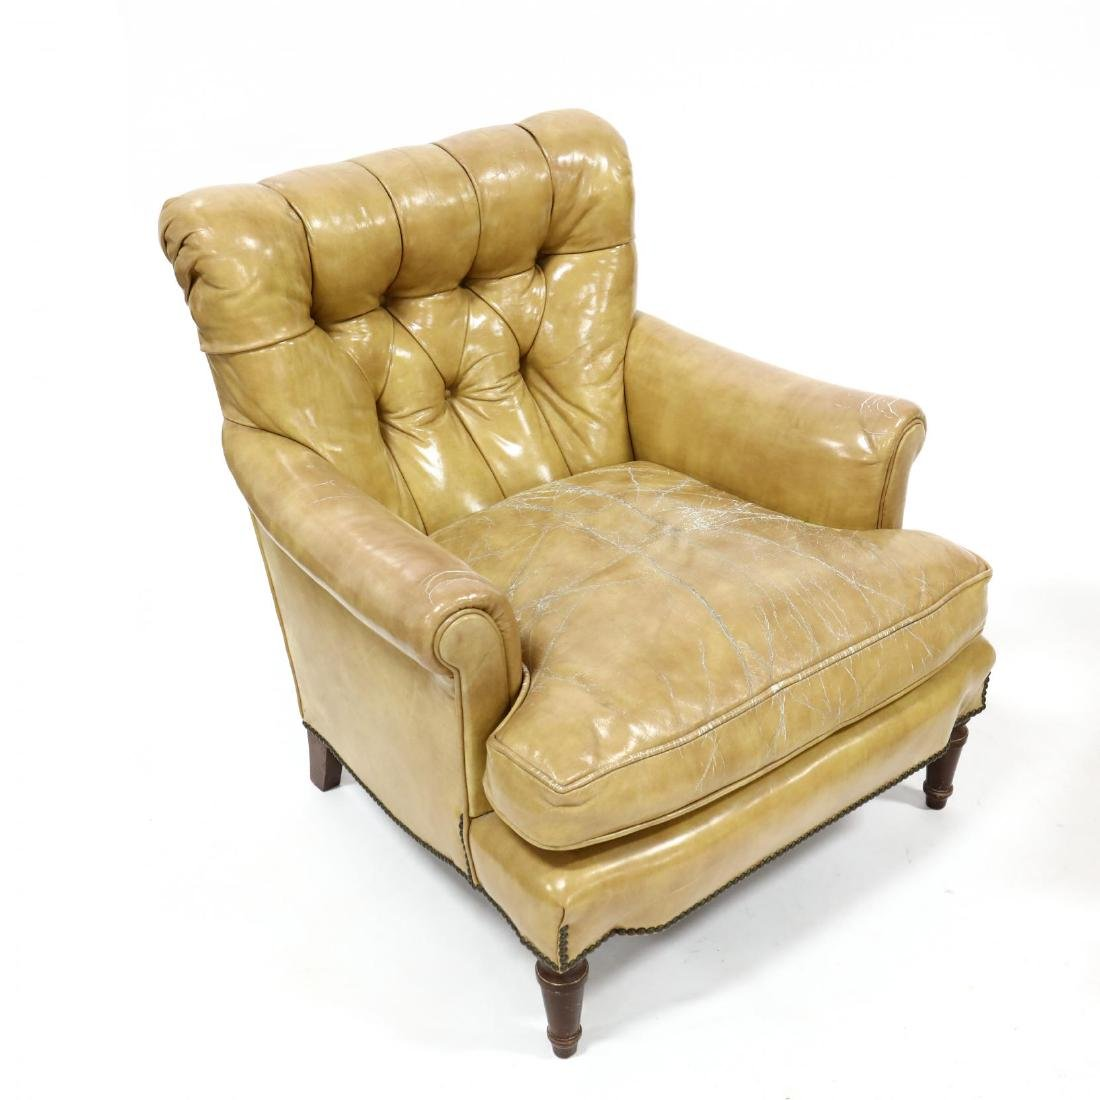 Pair of Vintage Leather Upholstered Club Chairs - 3